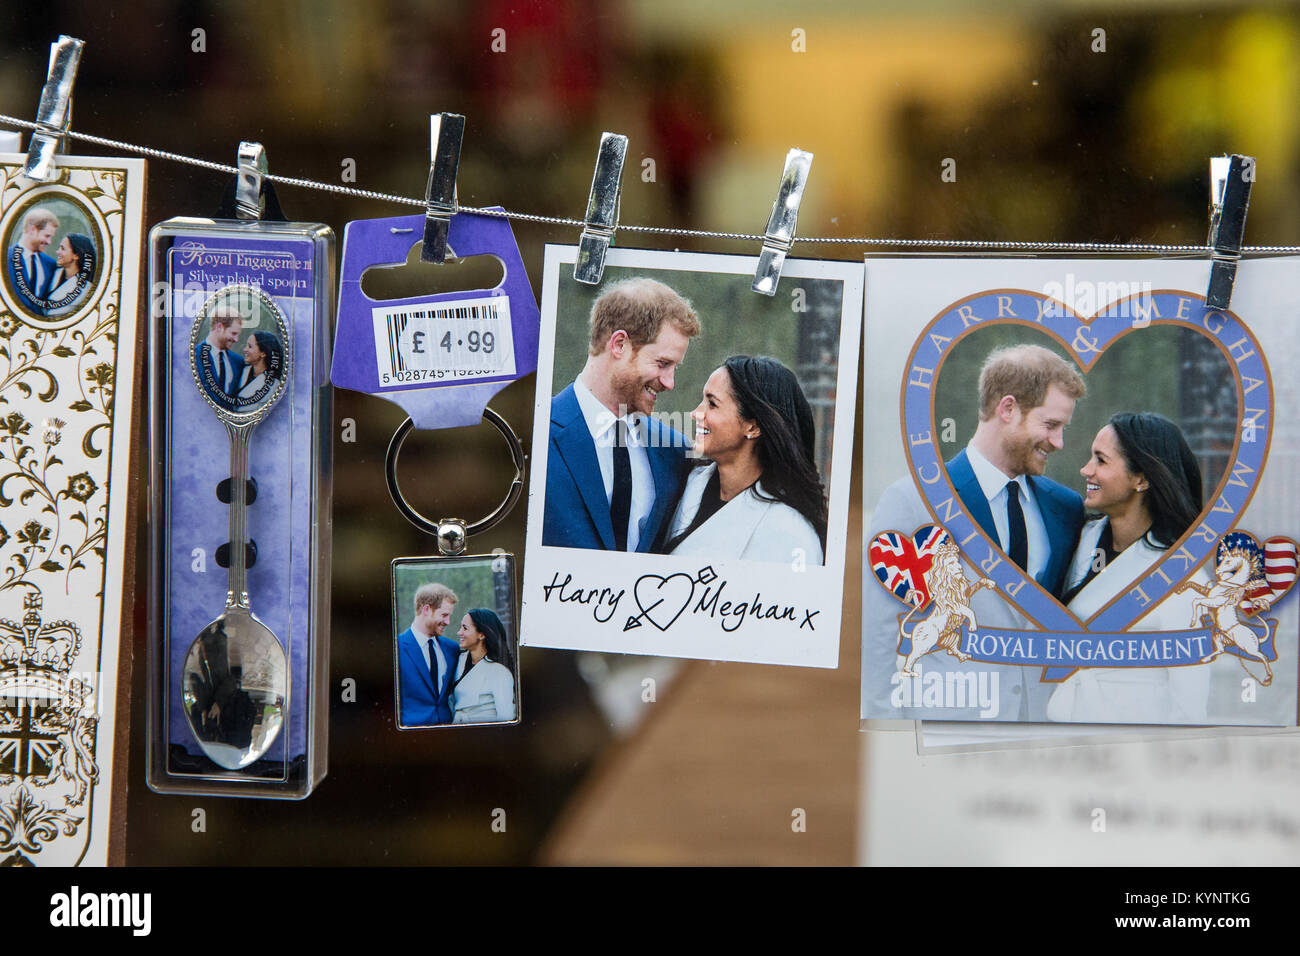 Windsor, UK. 15th Jan, 2018. Spoons and other mementos featuring images of Prince Harry and Meghan Markle have begun - Stock Image